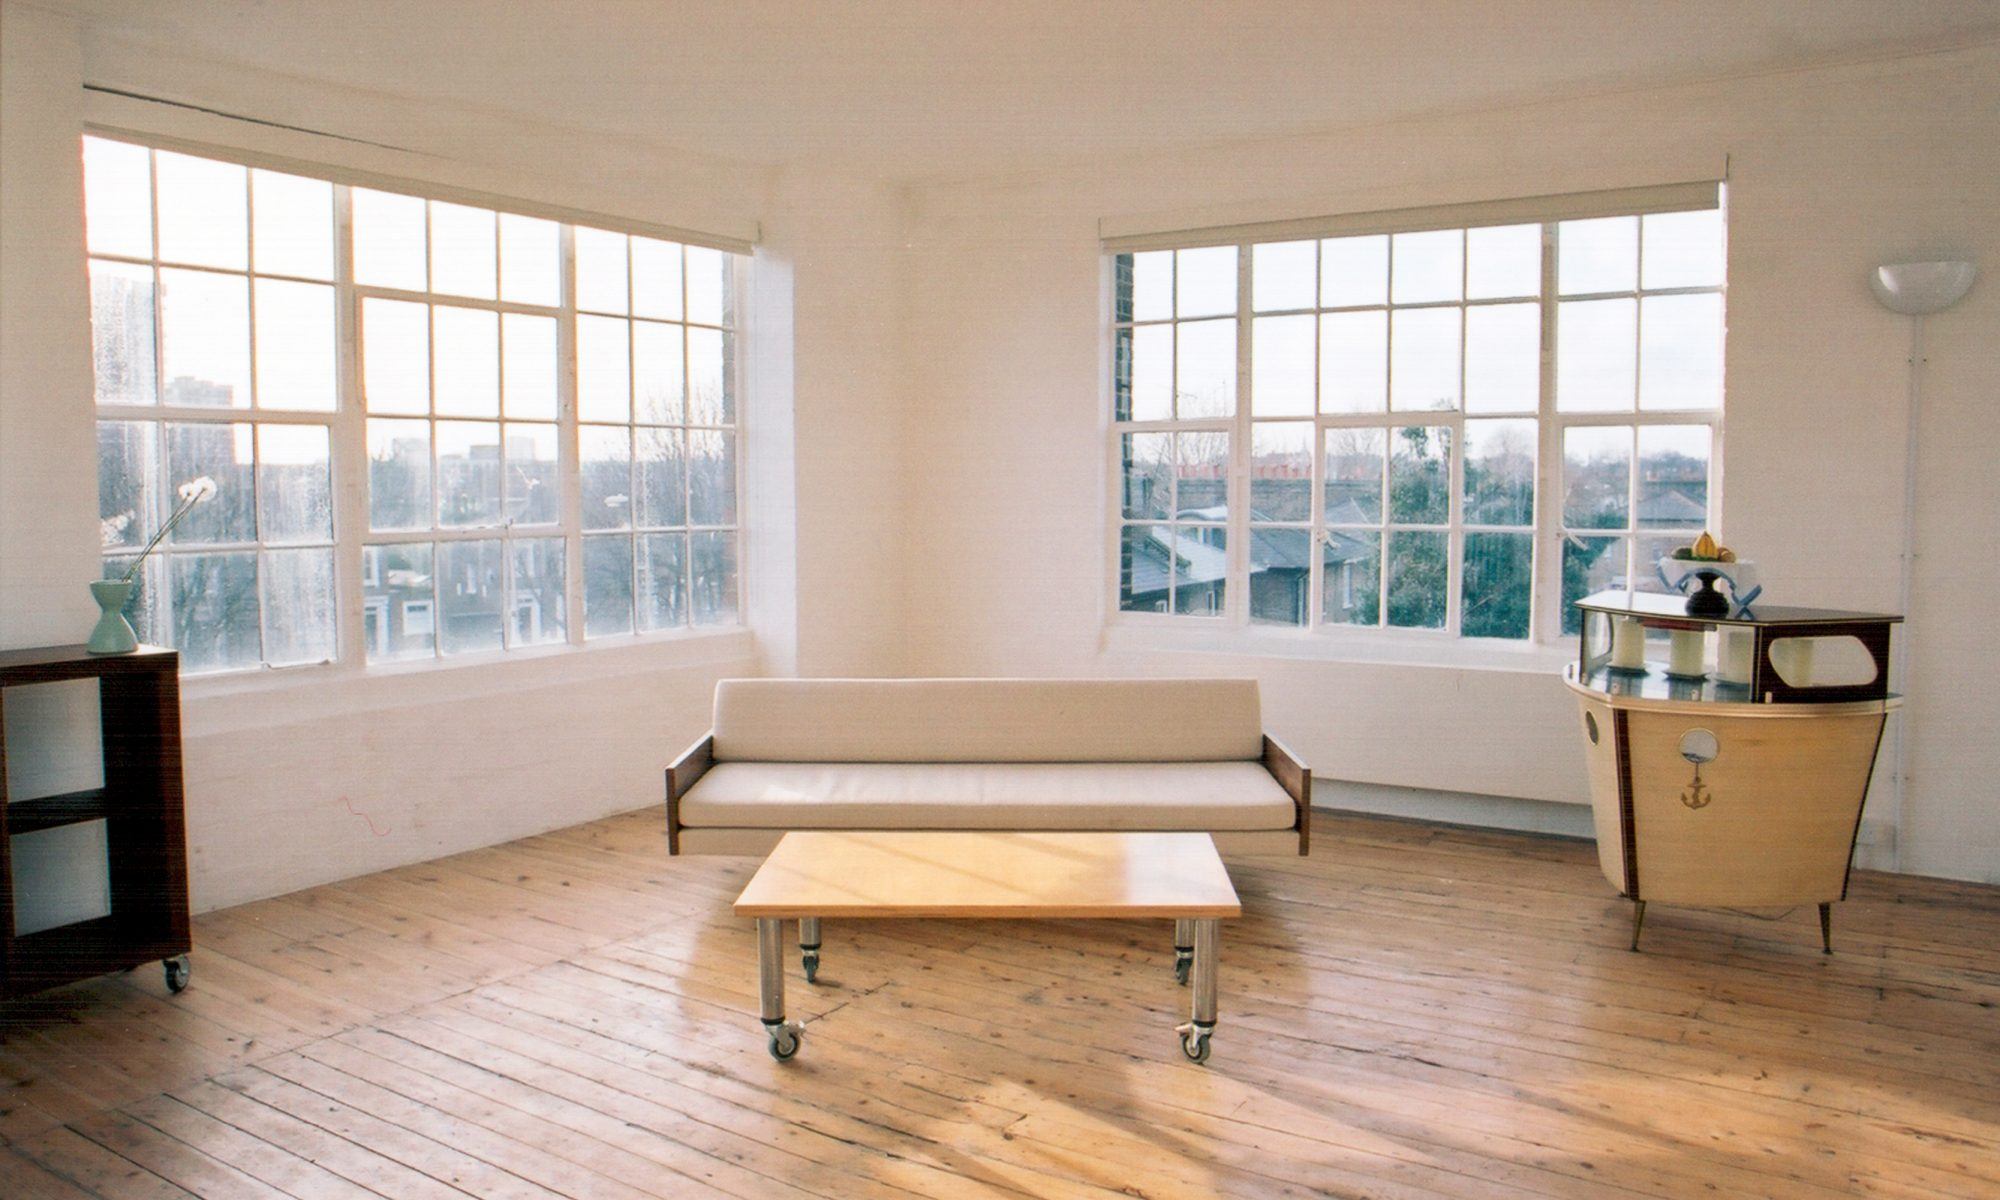 Live work units, live work spaces and artists studios to rent in warehouses in London…